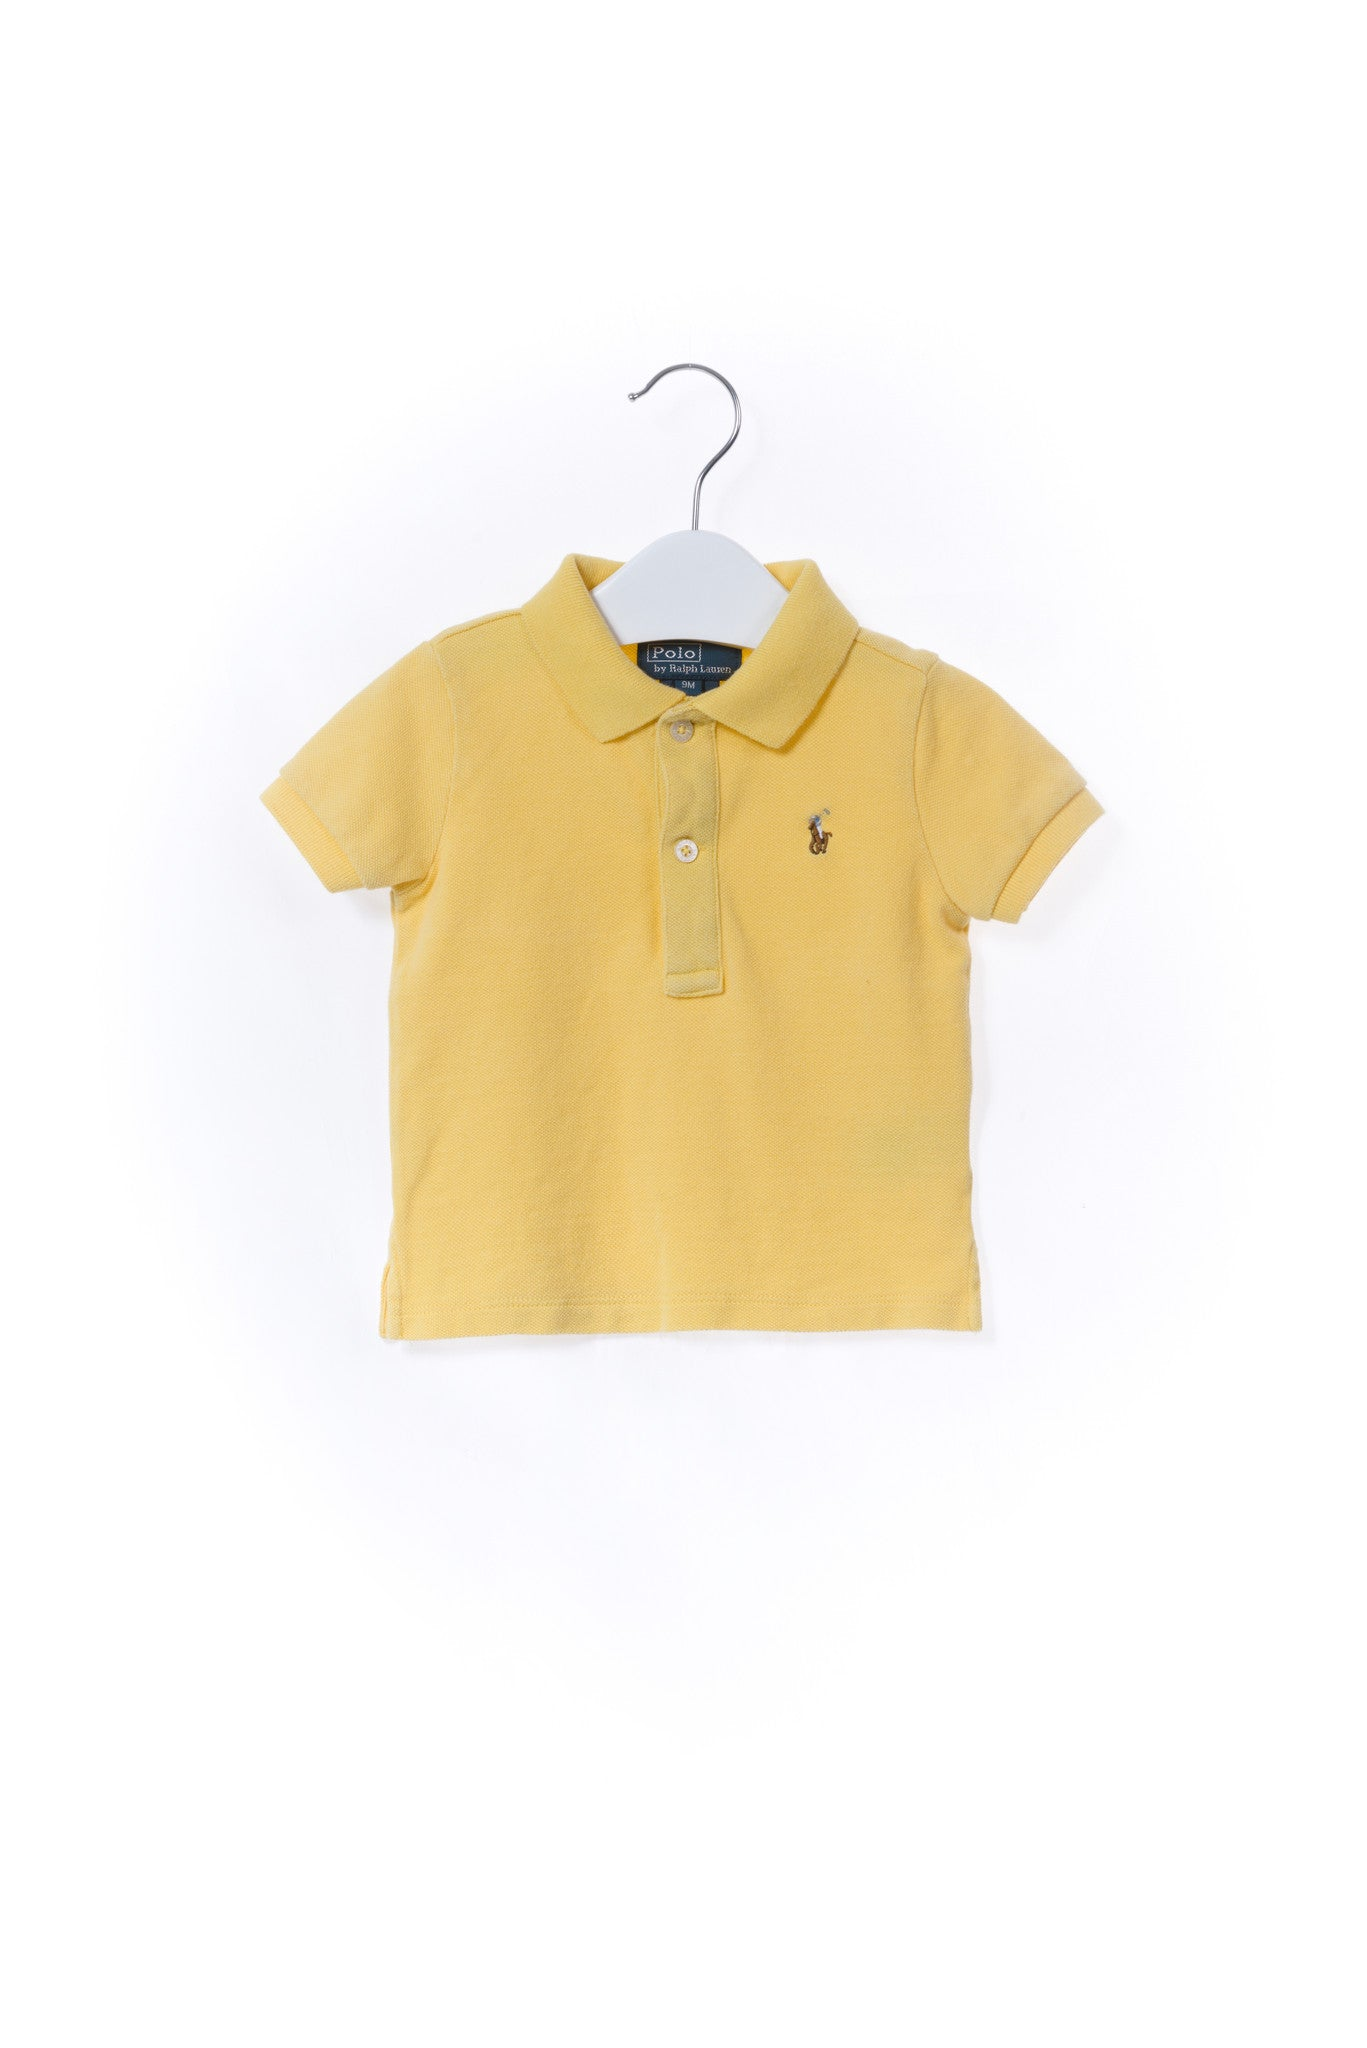 10001035 Polo Ralph Lauren Baby~Polo 6-9M at Retykle